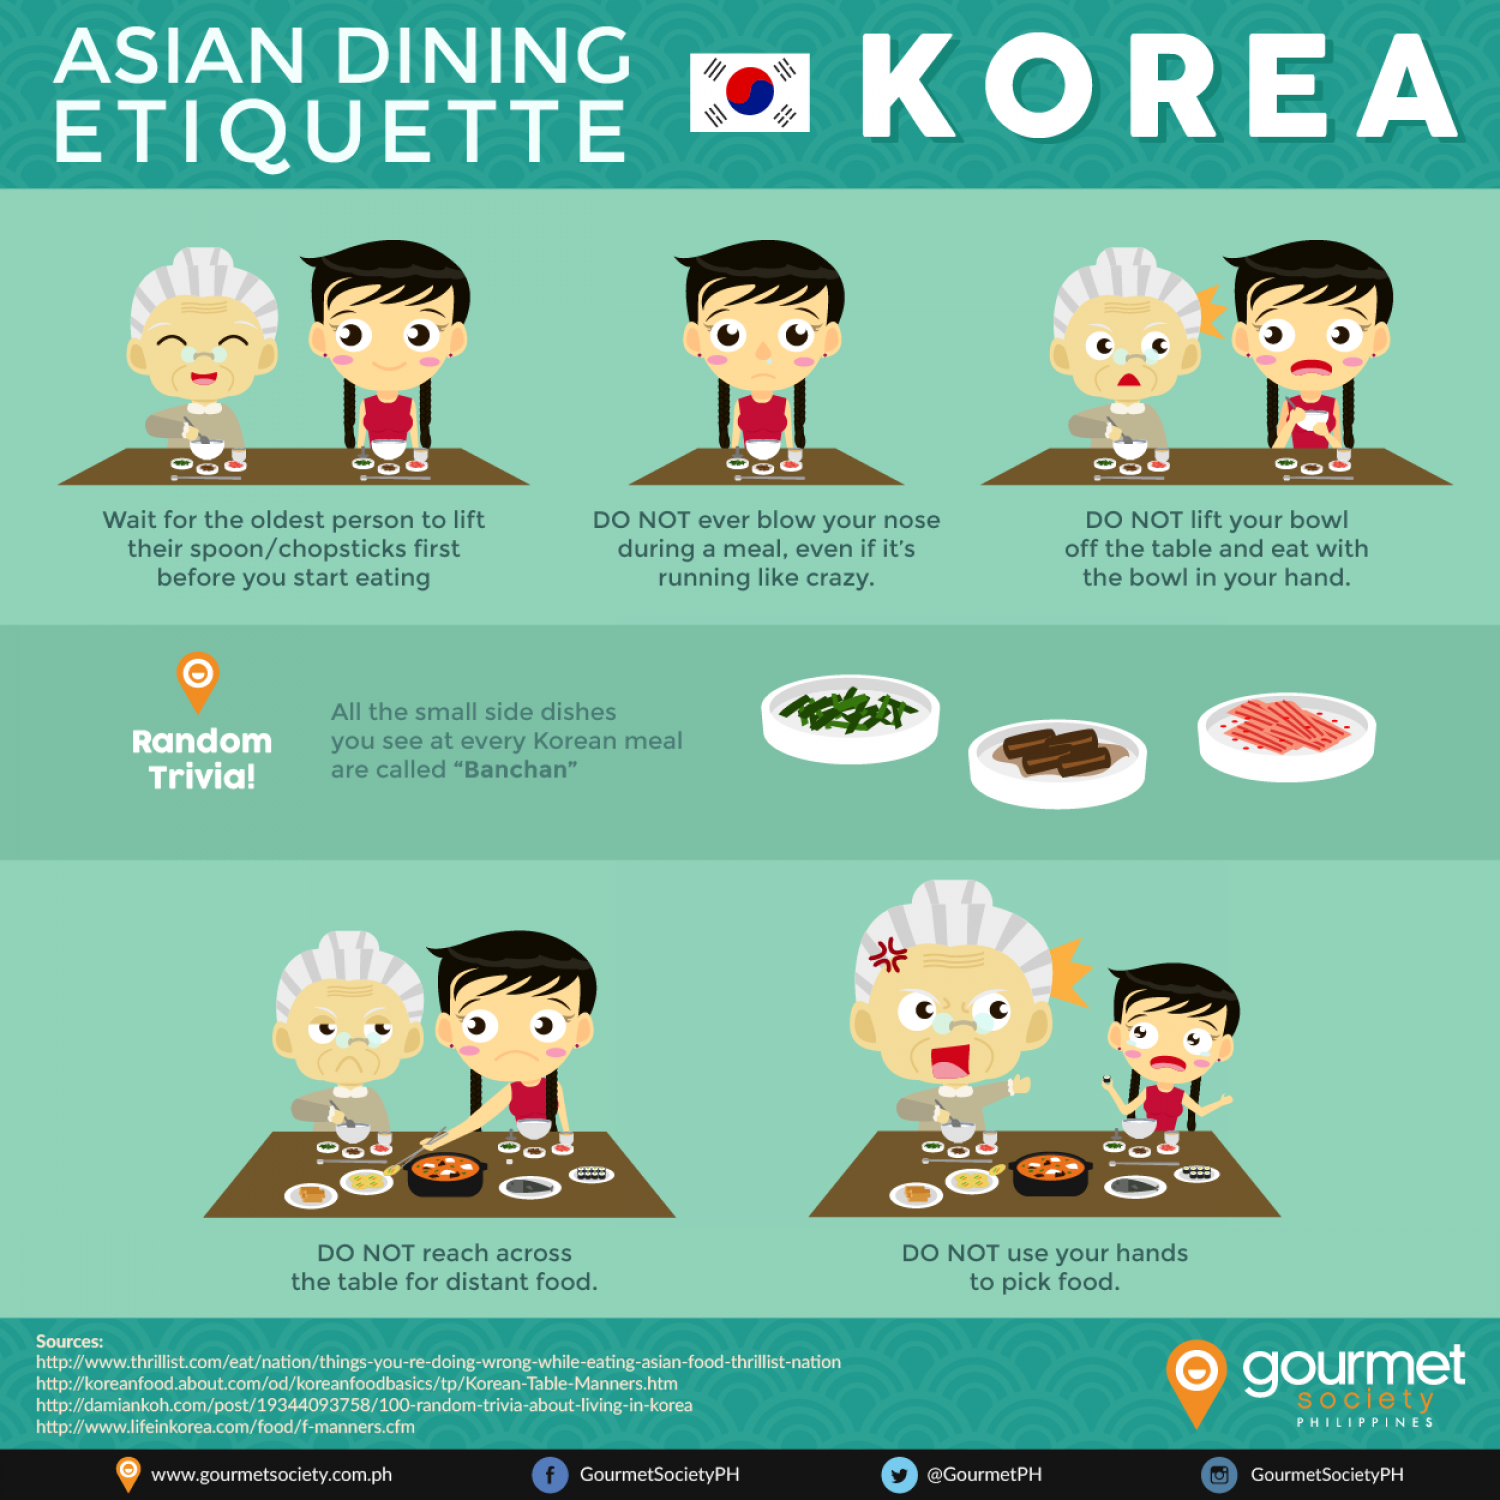 Asian Dining Etiquette Series In Korea Infographic